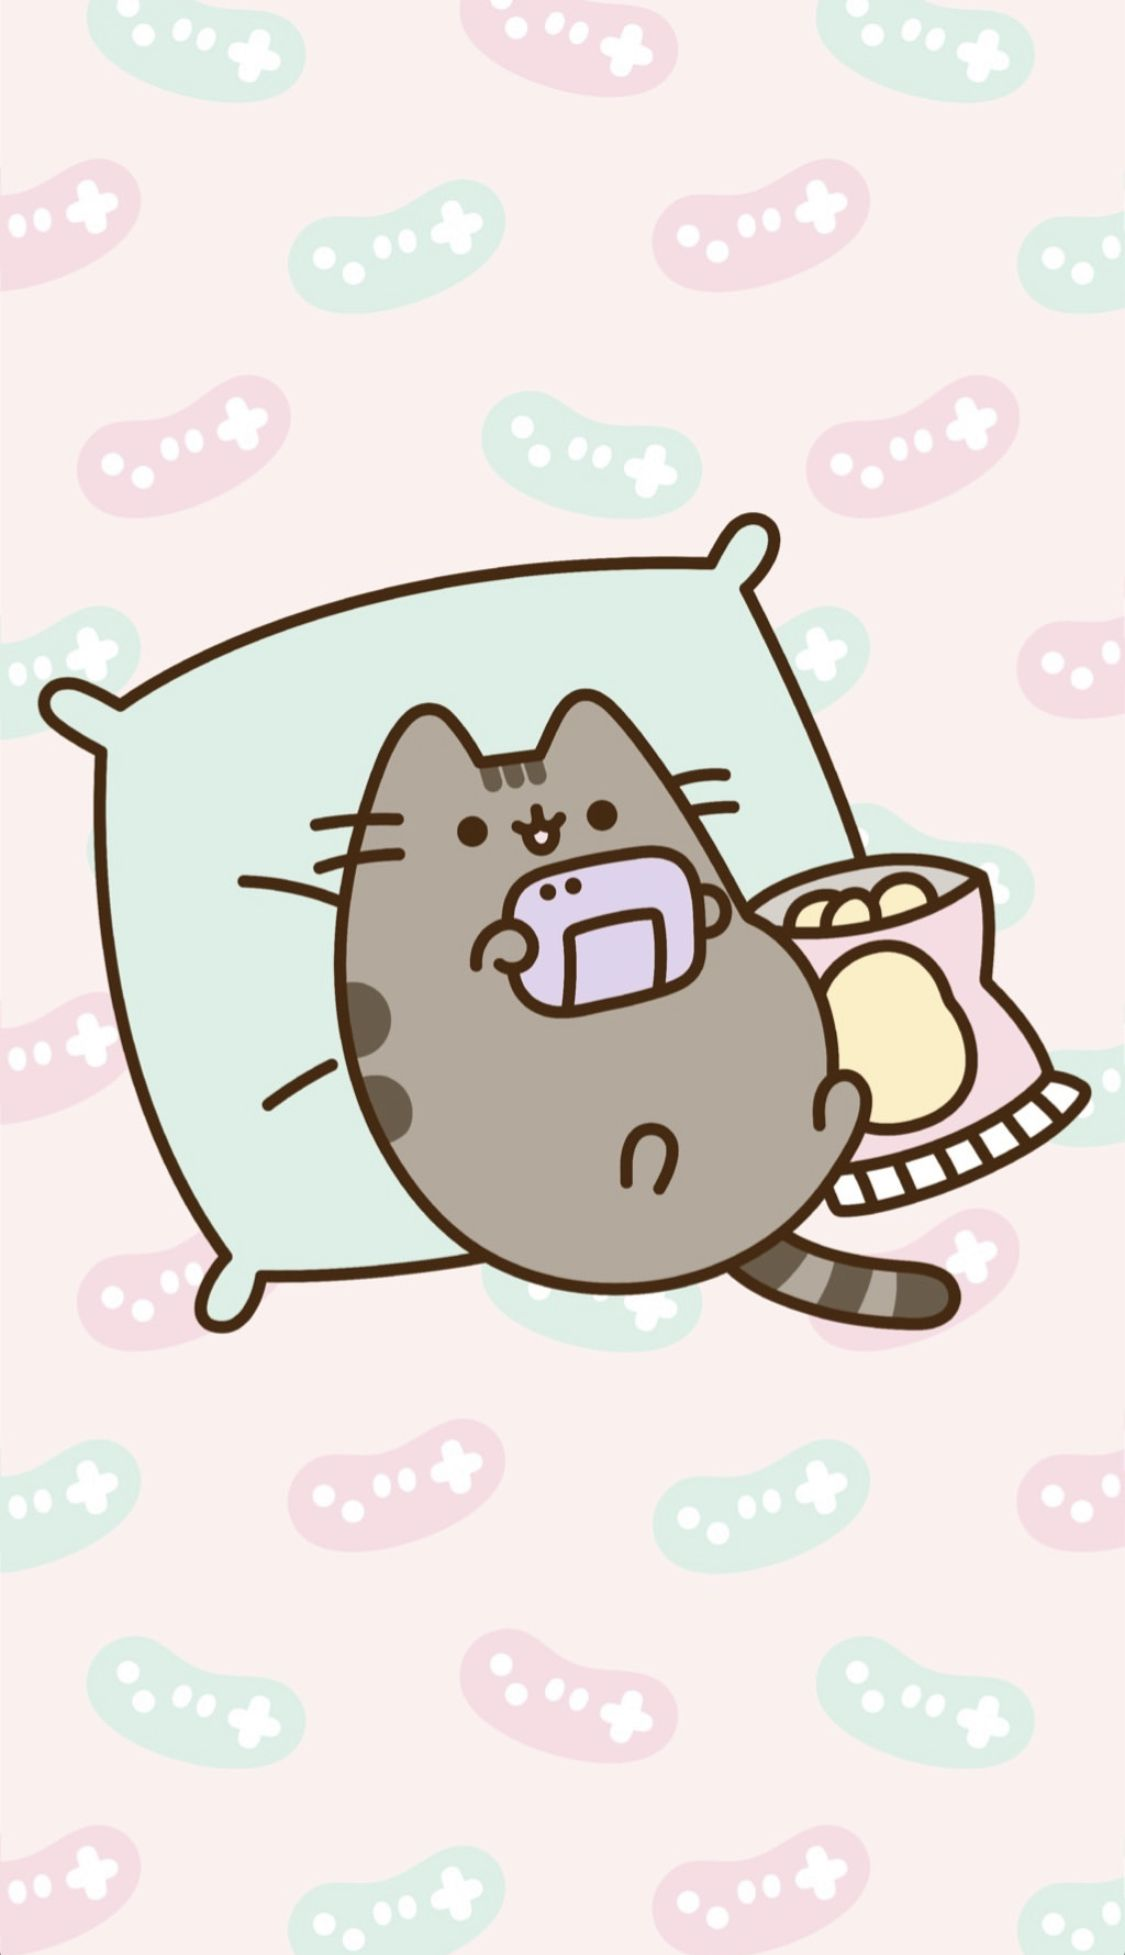 Pusheen Gaming Wallpaper Pusheen Cute Pusheen Cat Cat Wallpaper